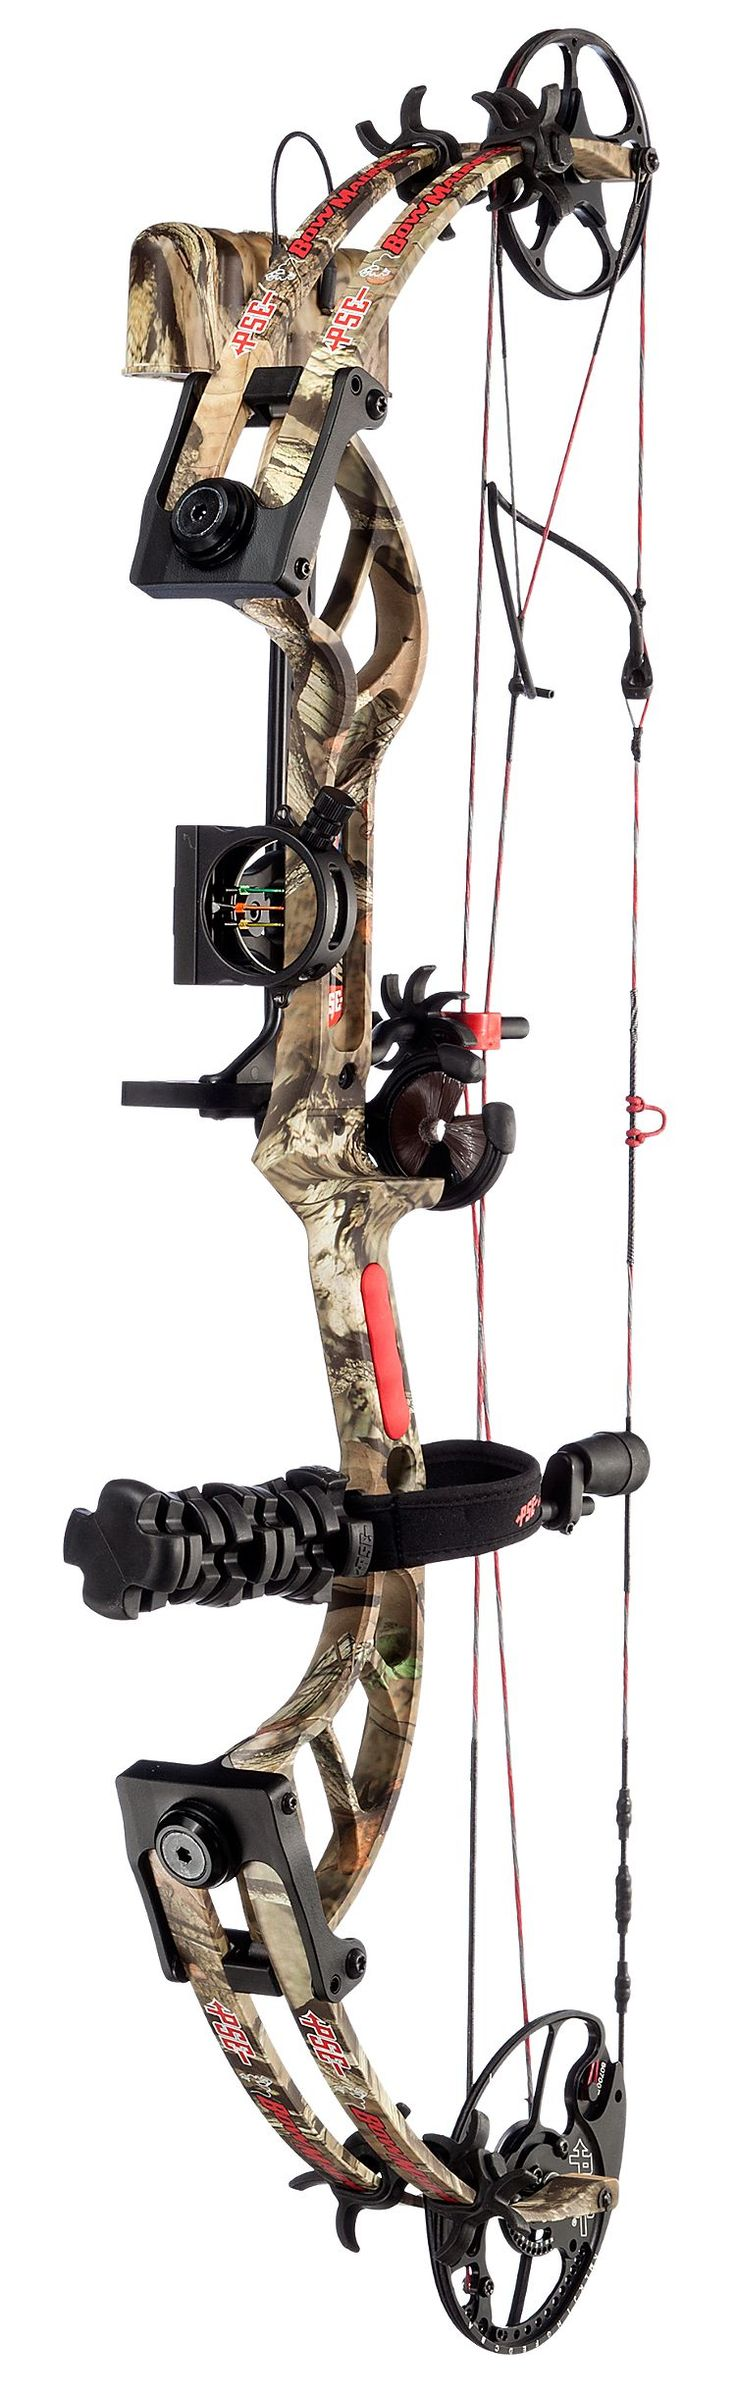 PSE Archery Bow Madness 30 RTS Compound Bow Package | Bass Pro Shops